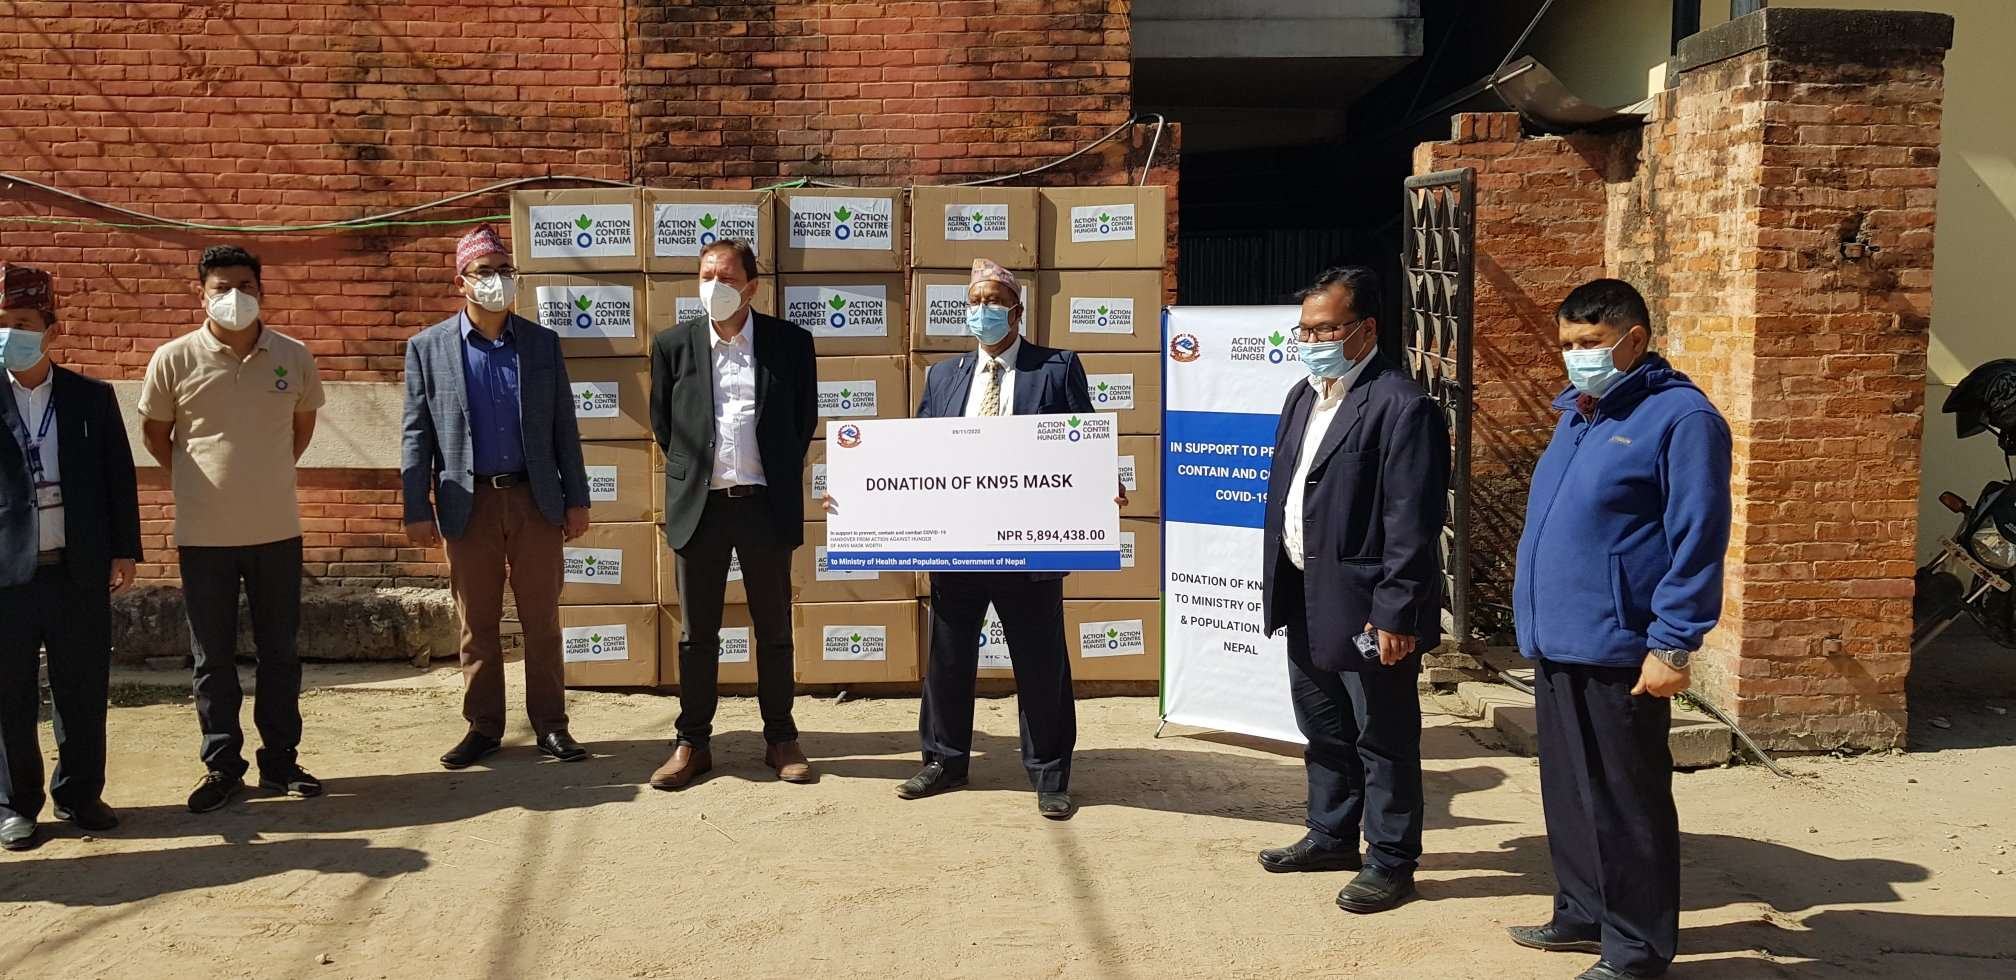 Representatives from Action Against Hunger Nepal pose for a portrait after handing over KN95 masks to the Ministry of Health and Population, in Kathmandu, on Monday, November 09, 2020. Photo Courtesy: Action Against Hunger Nepal